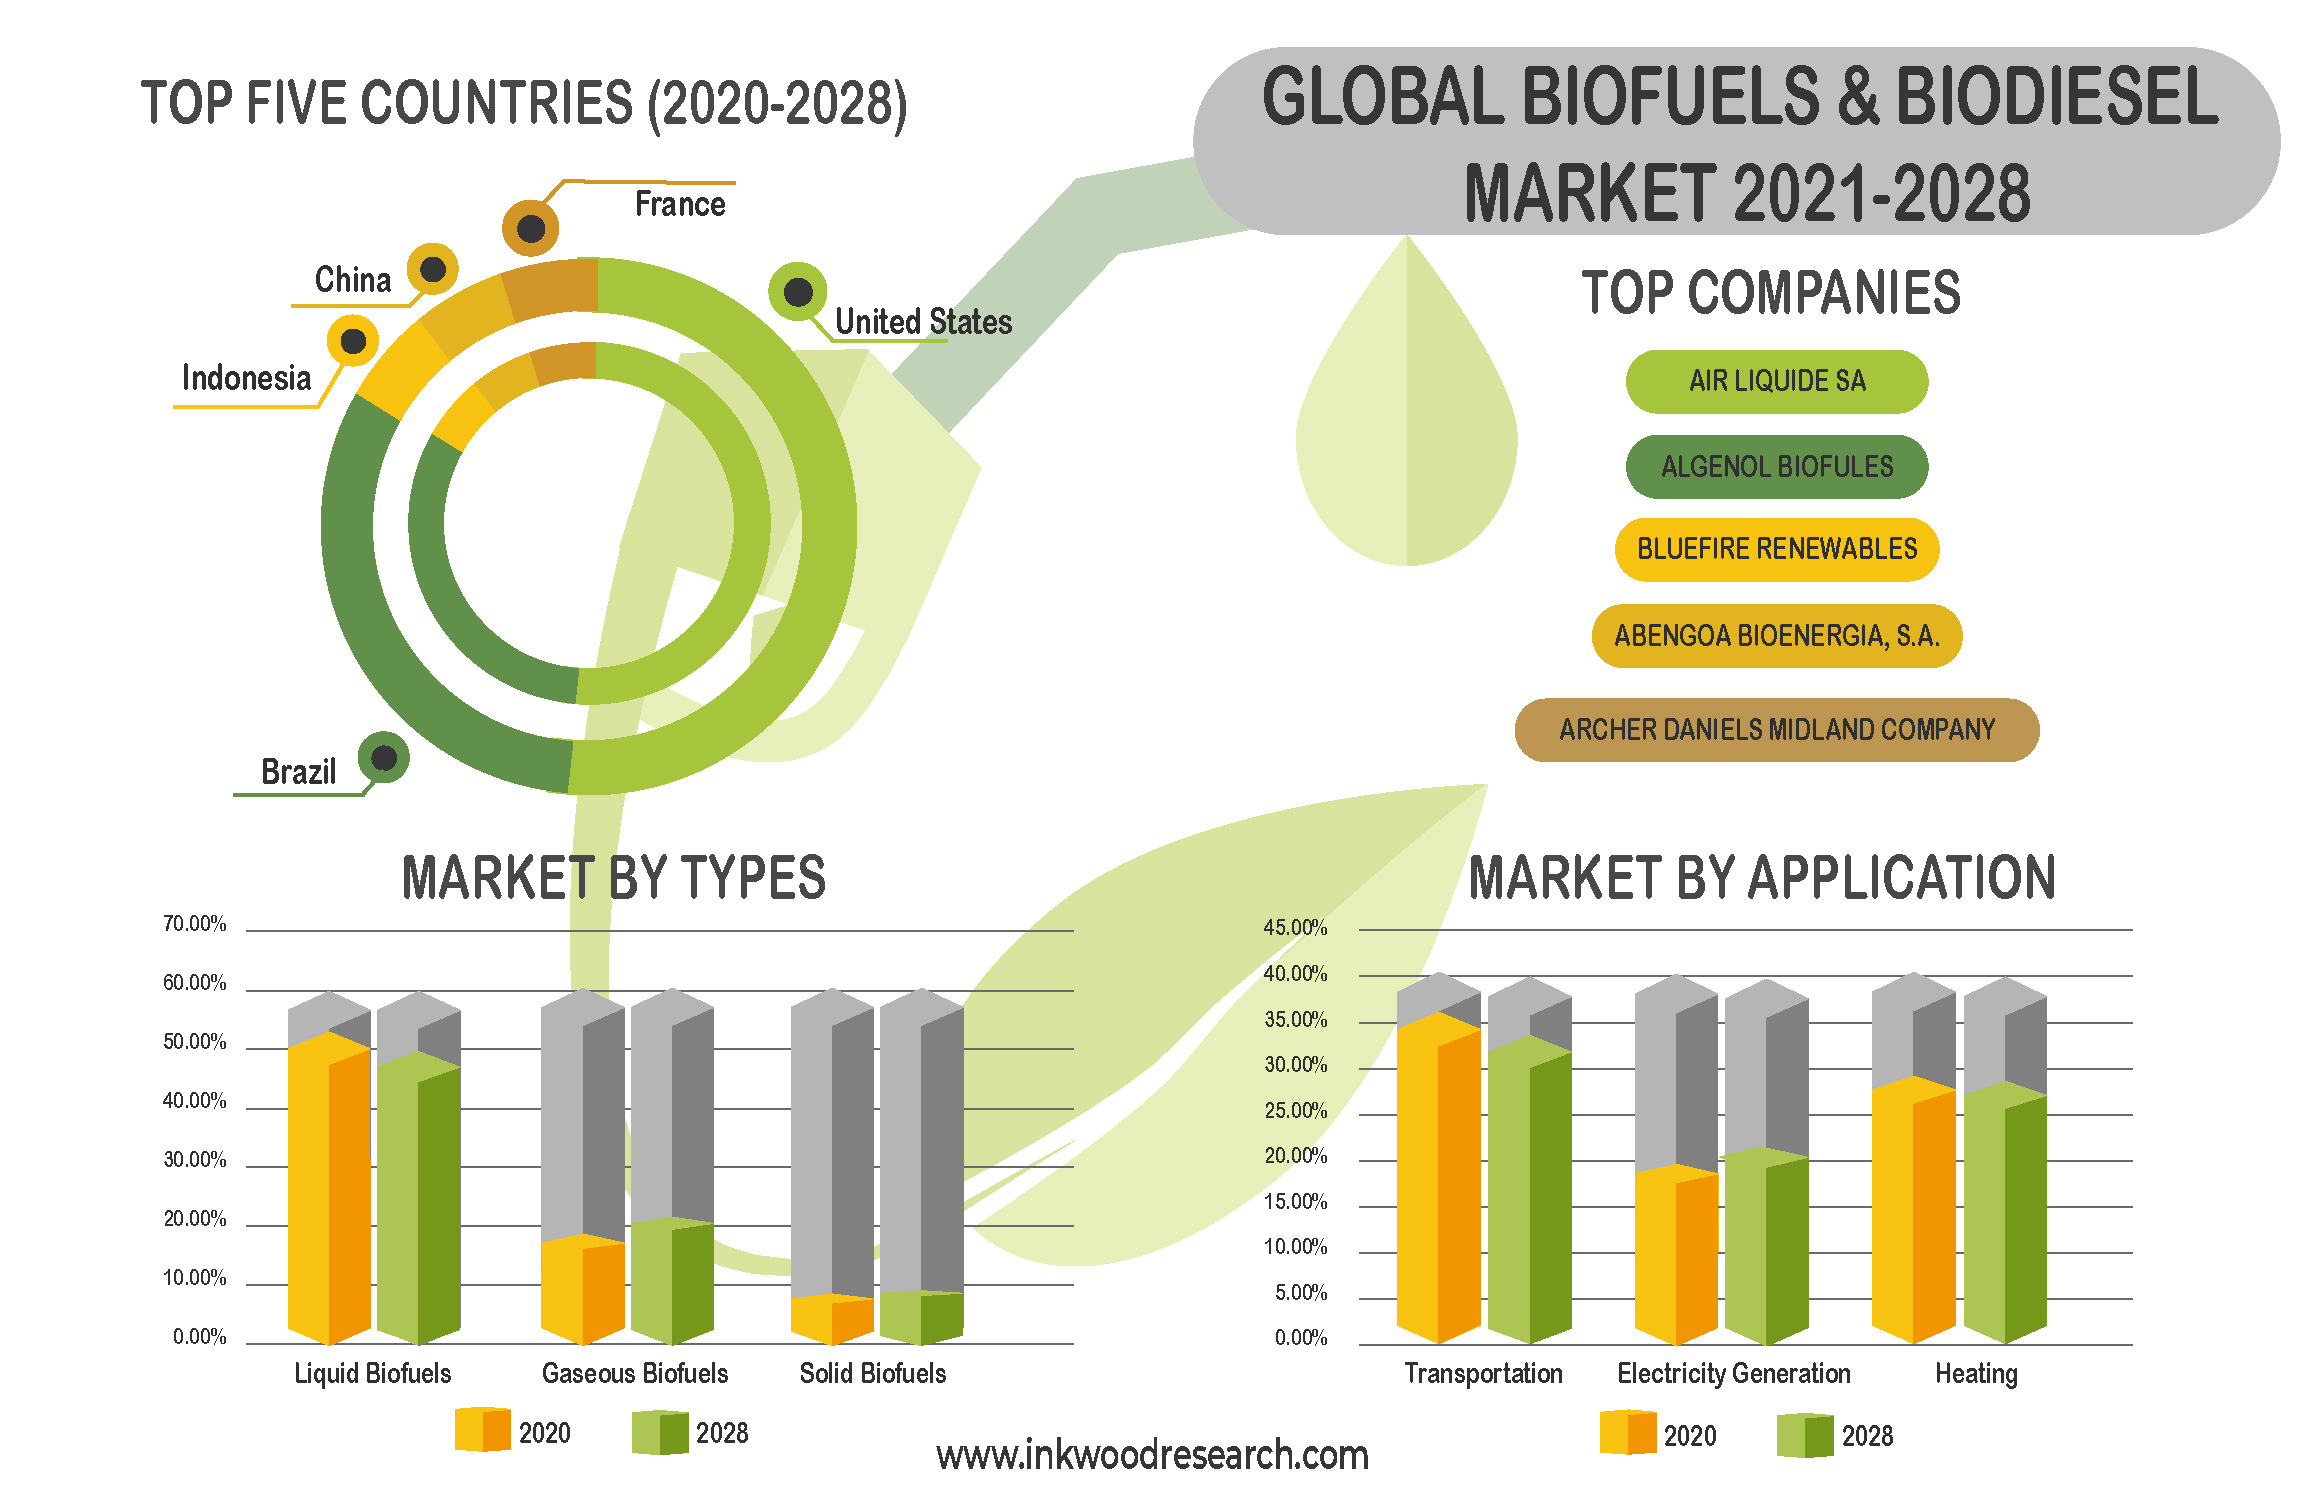 Global Biofuels & Biodiesel Market Gain Traction with Interest in Clean and Alternative Fuels